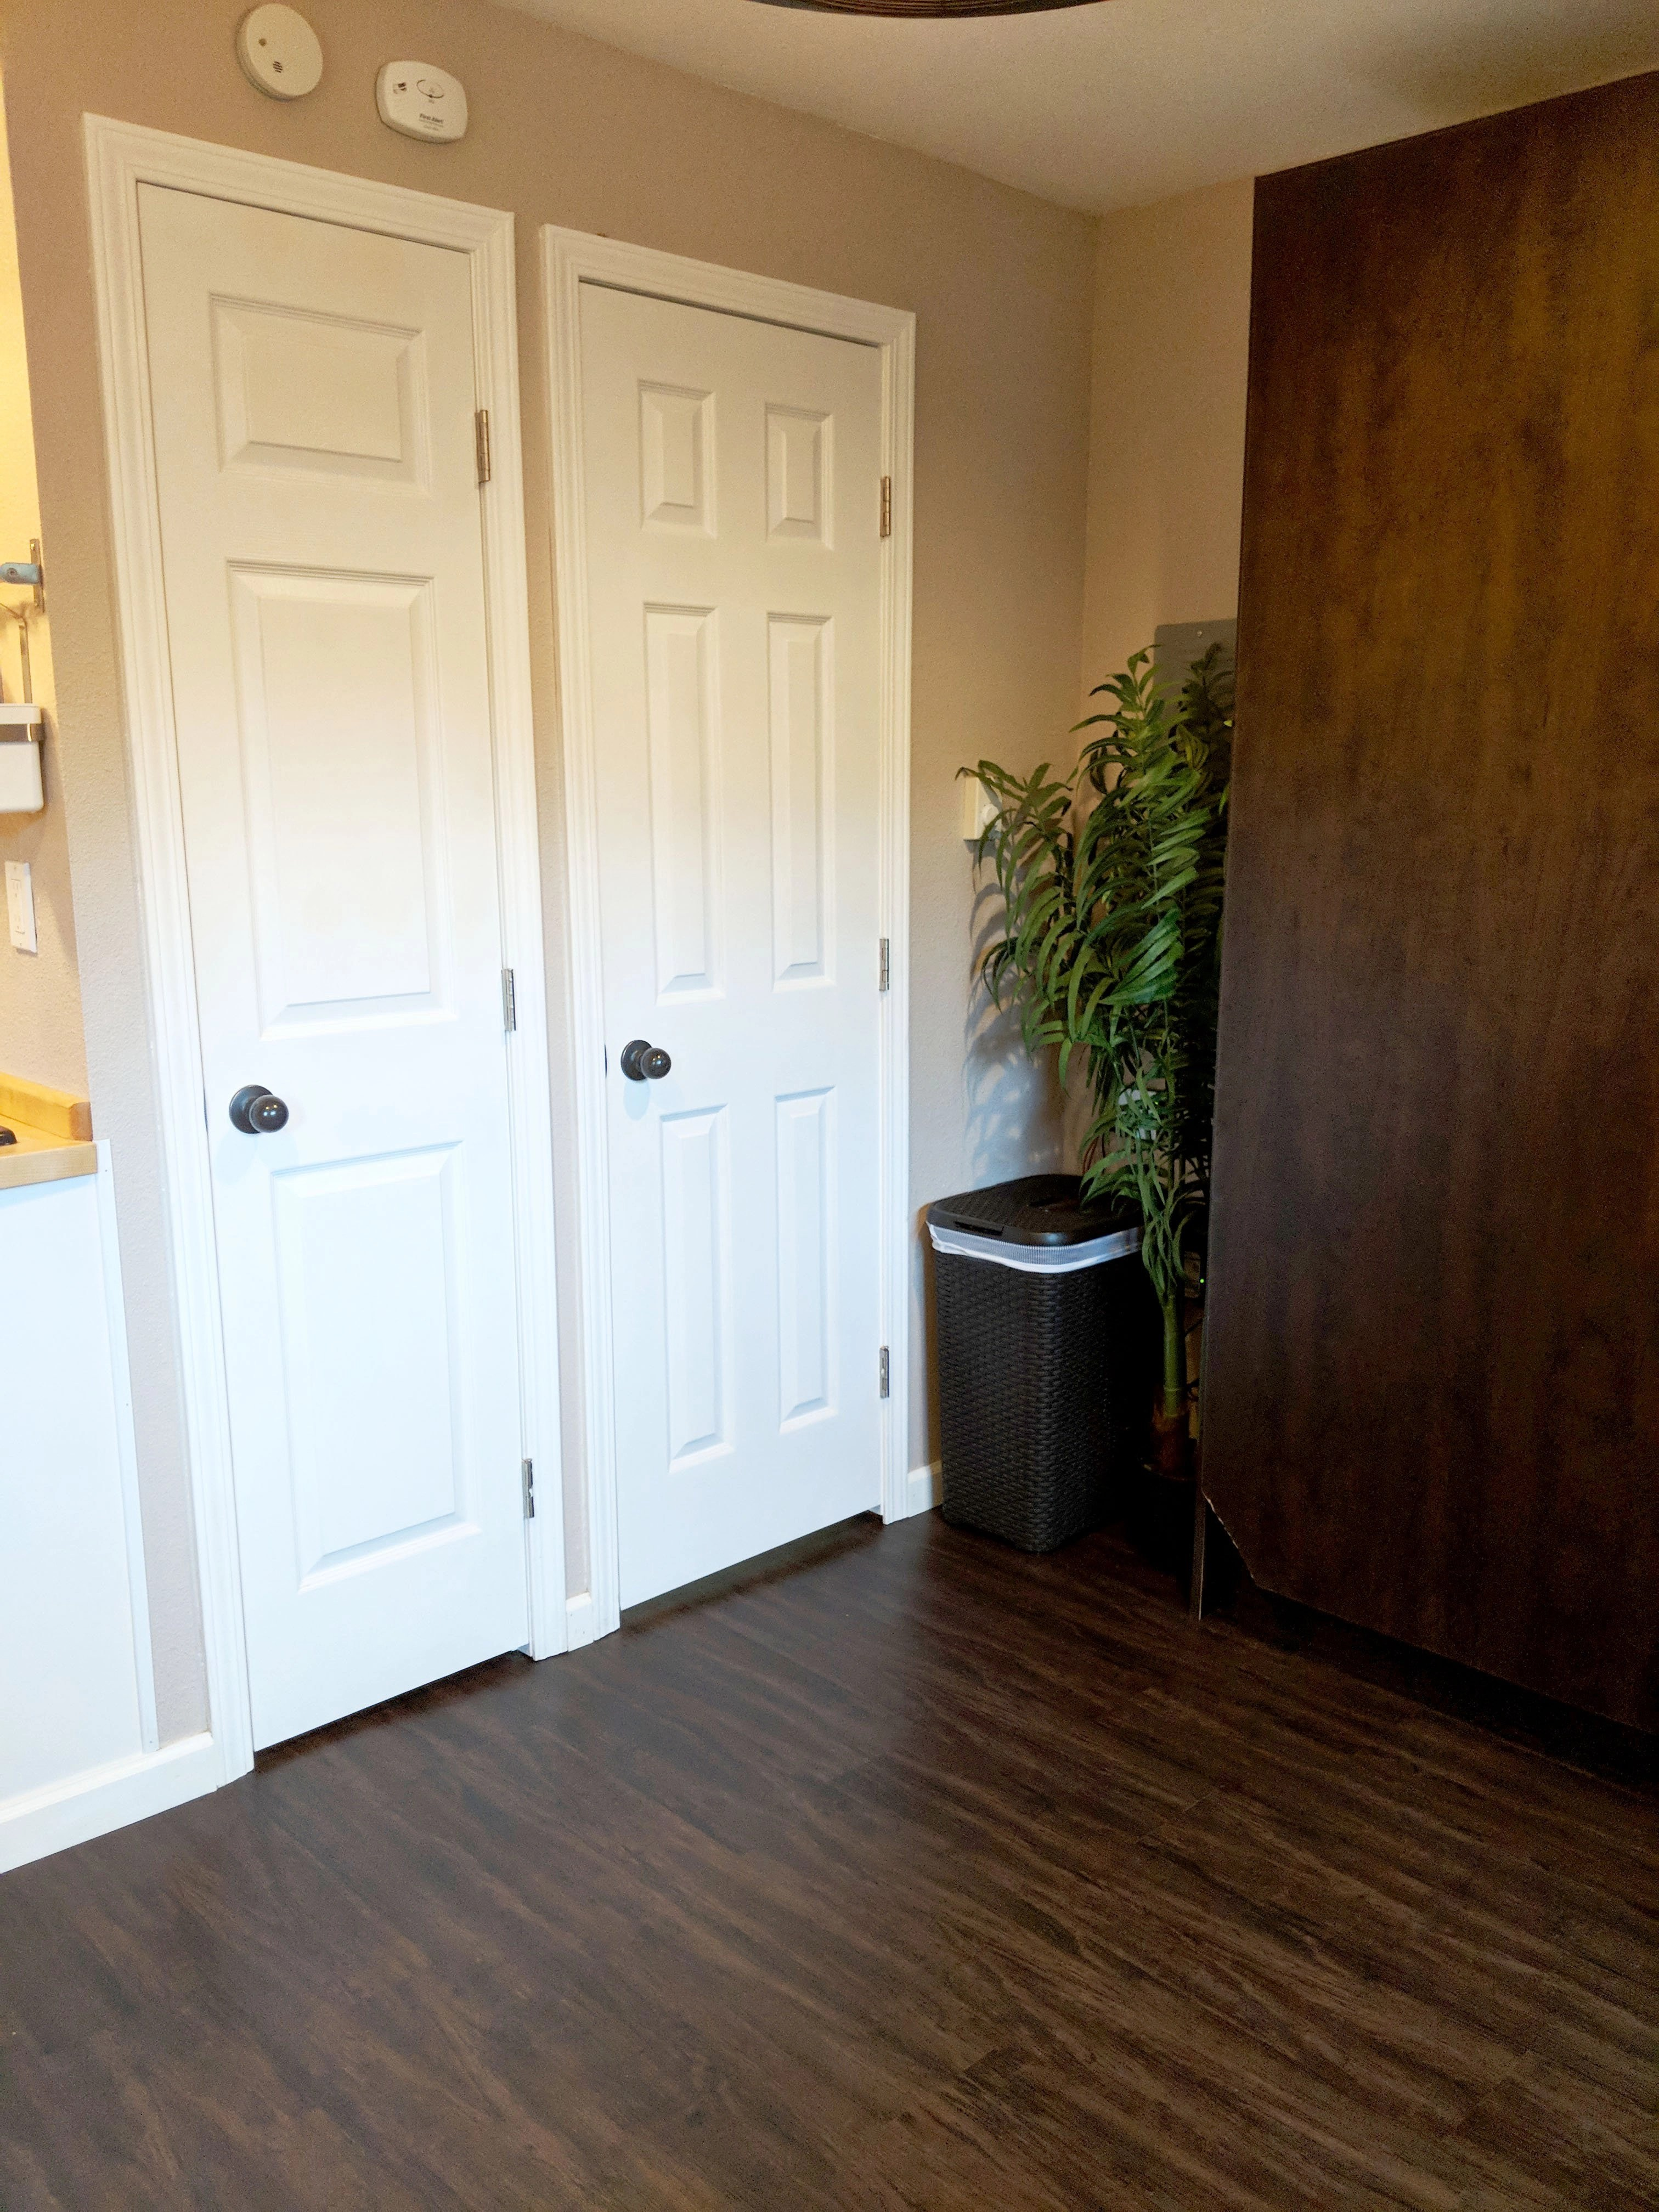 two modern doors and a murphy bed